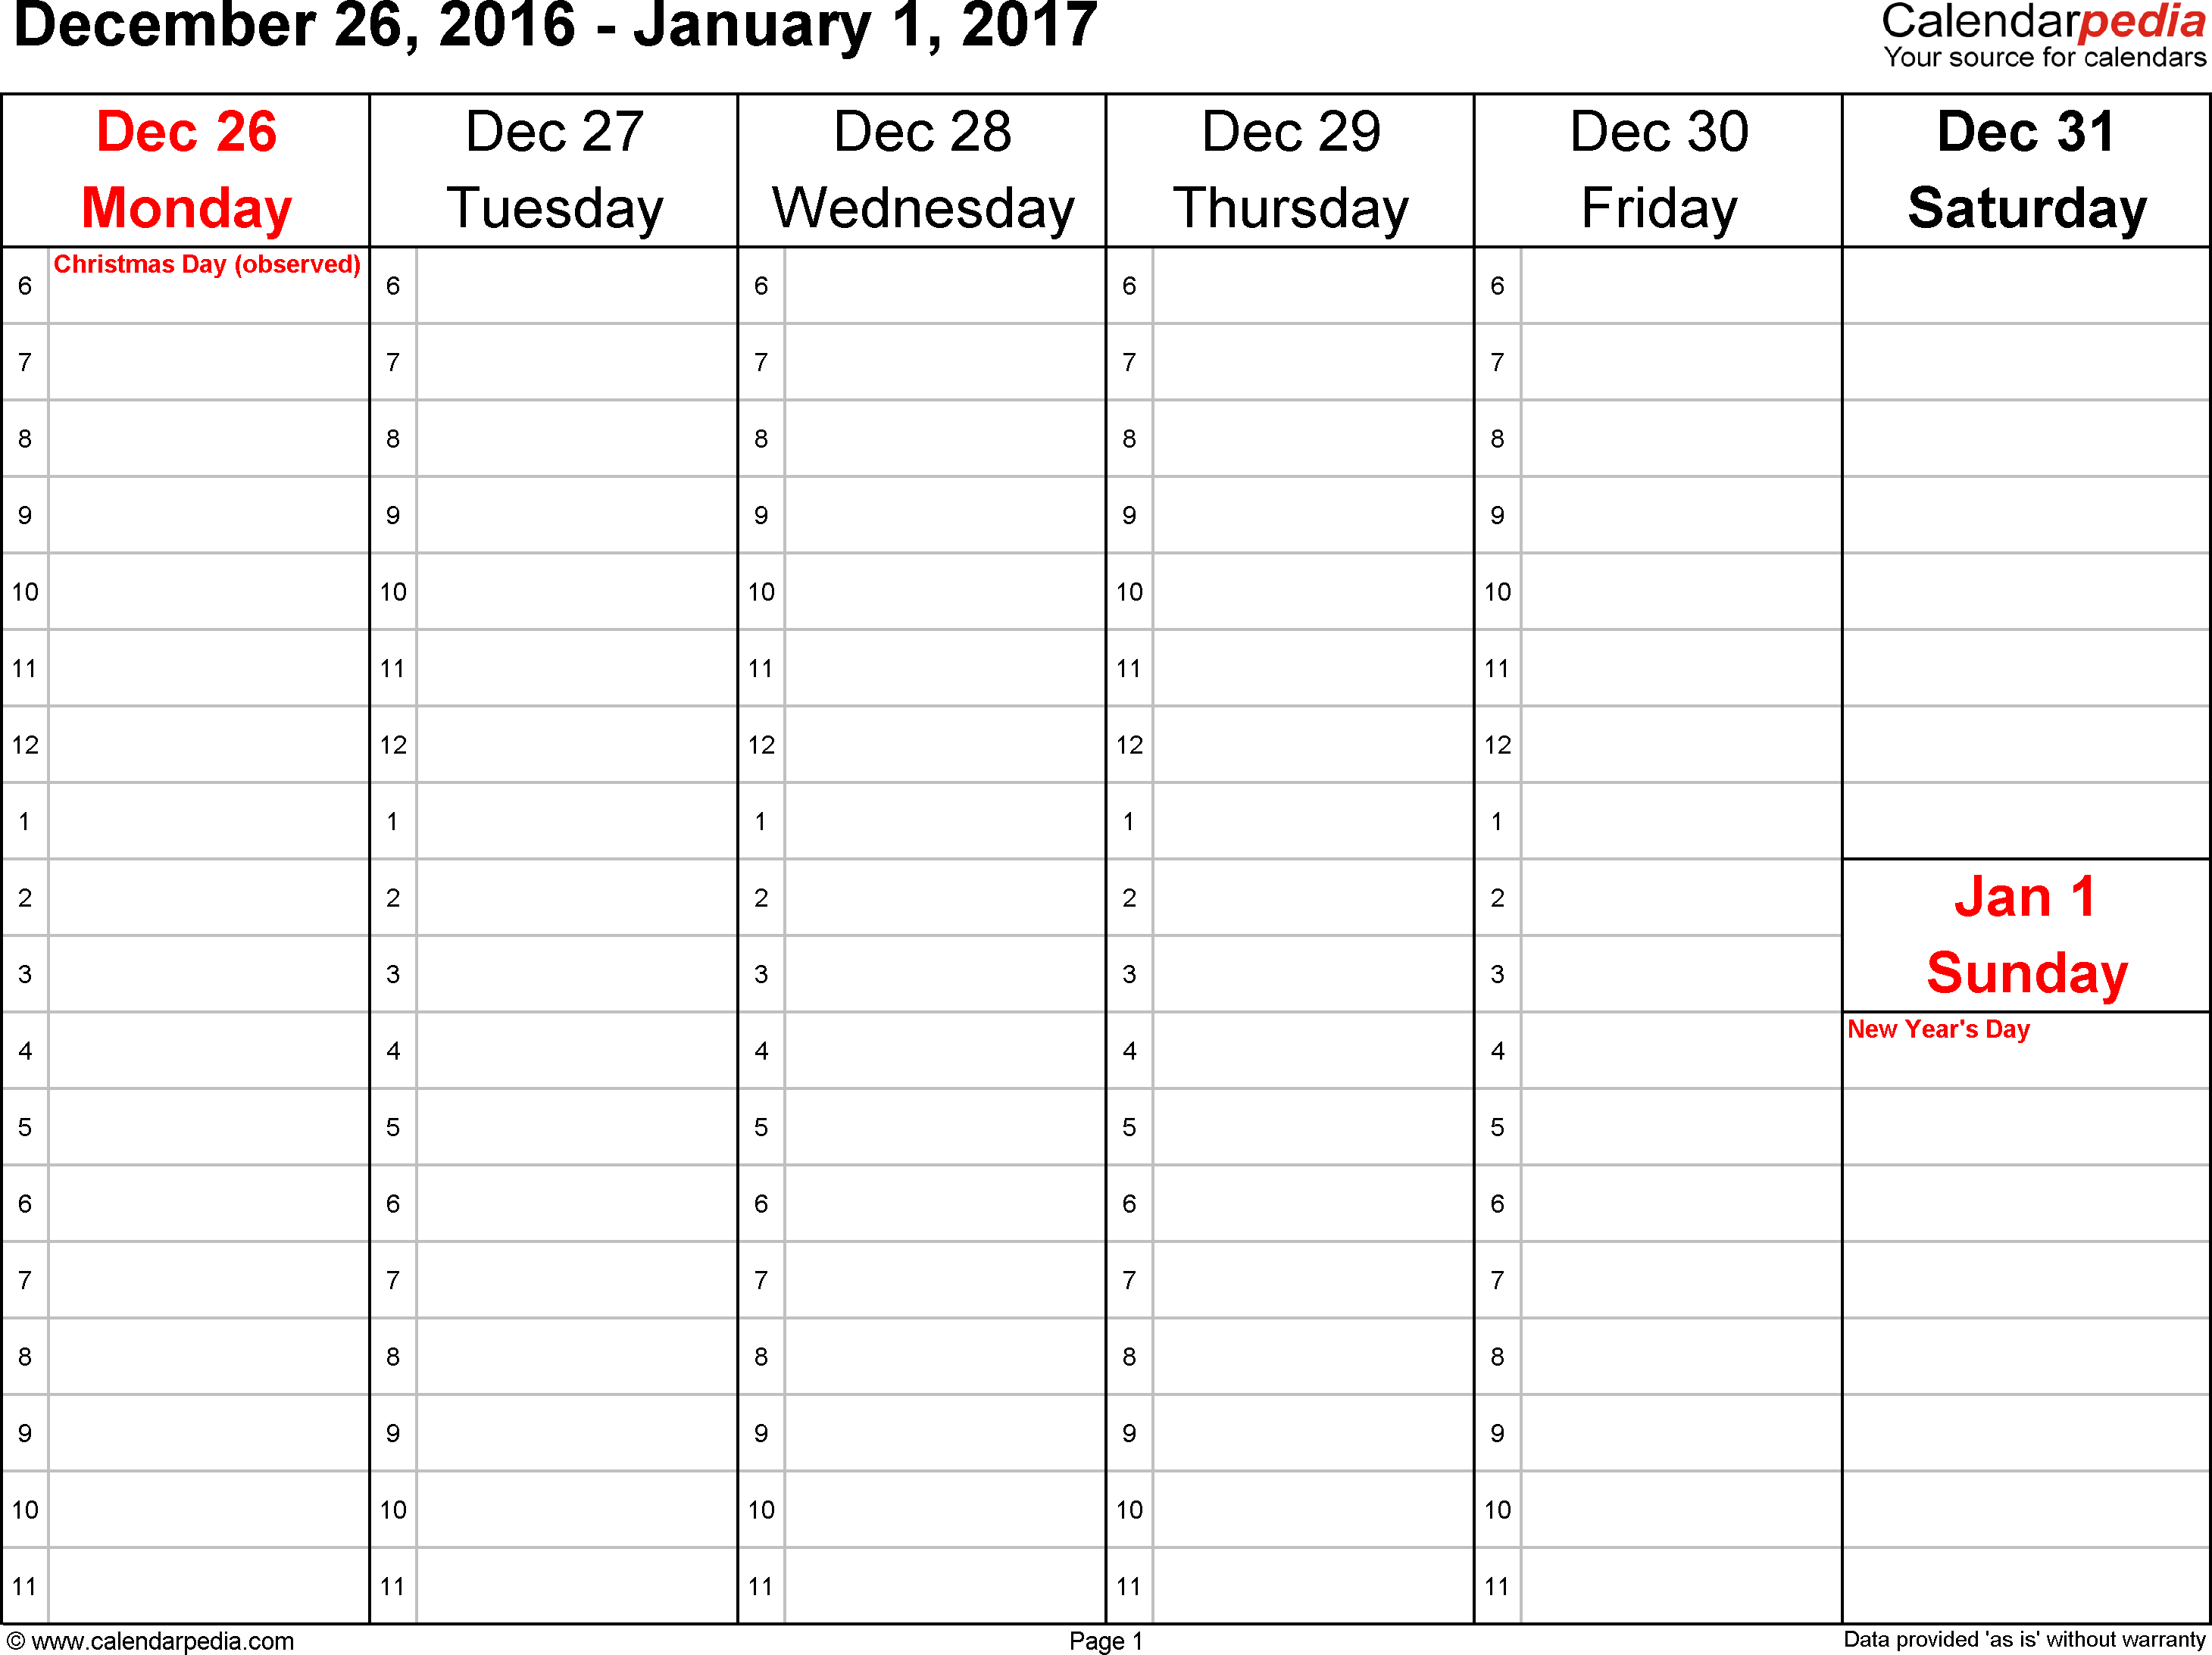 Weekly Calendar 2017 For Excel - 12 Free Printable Templates throughout Printable Calendar Template Week Day Only